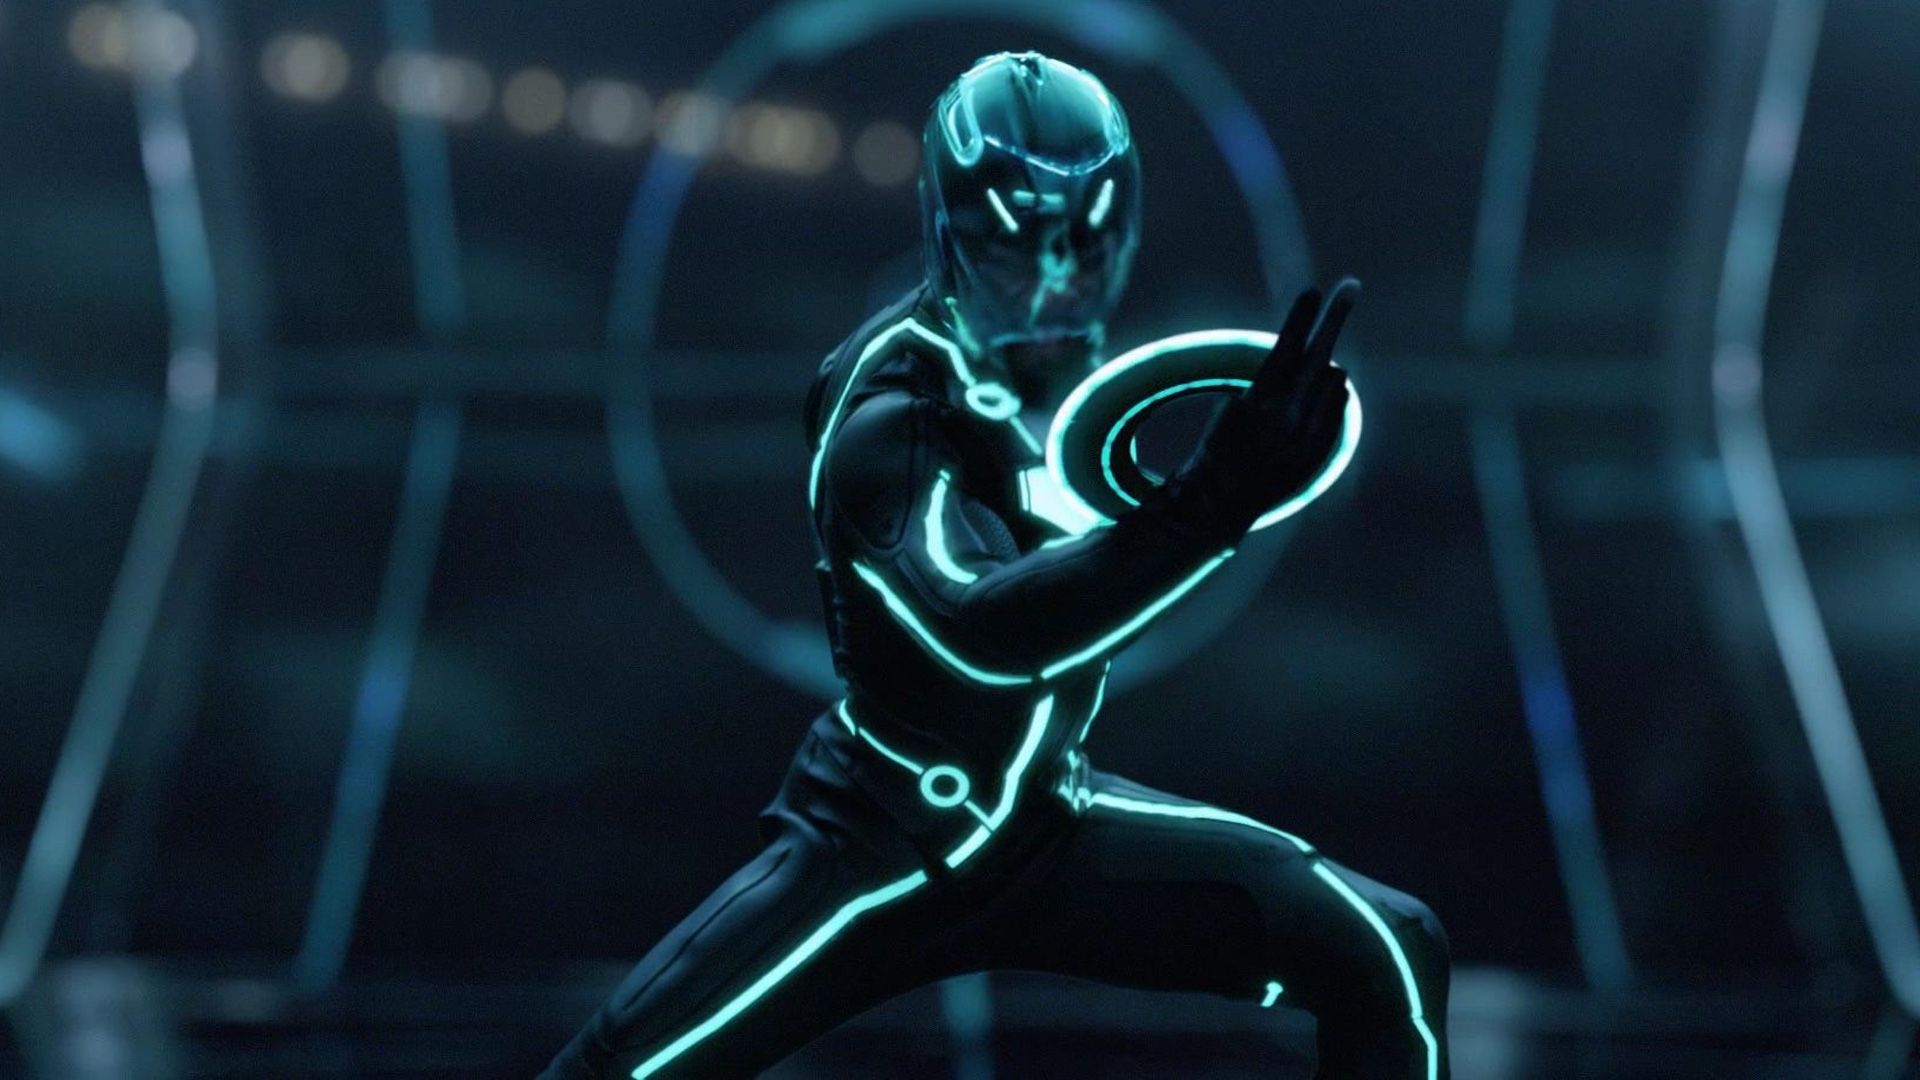 an-open-world-tron-video-game-is-rumored-to-be-in-development-social.jpg